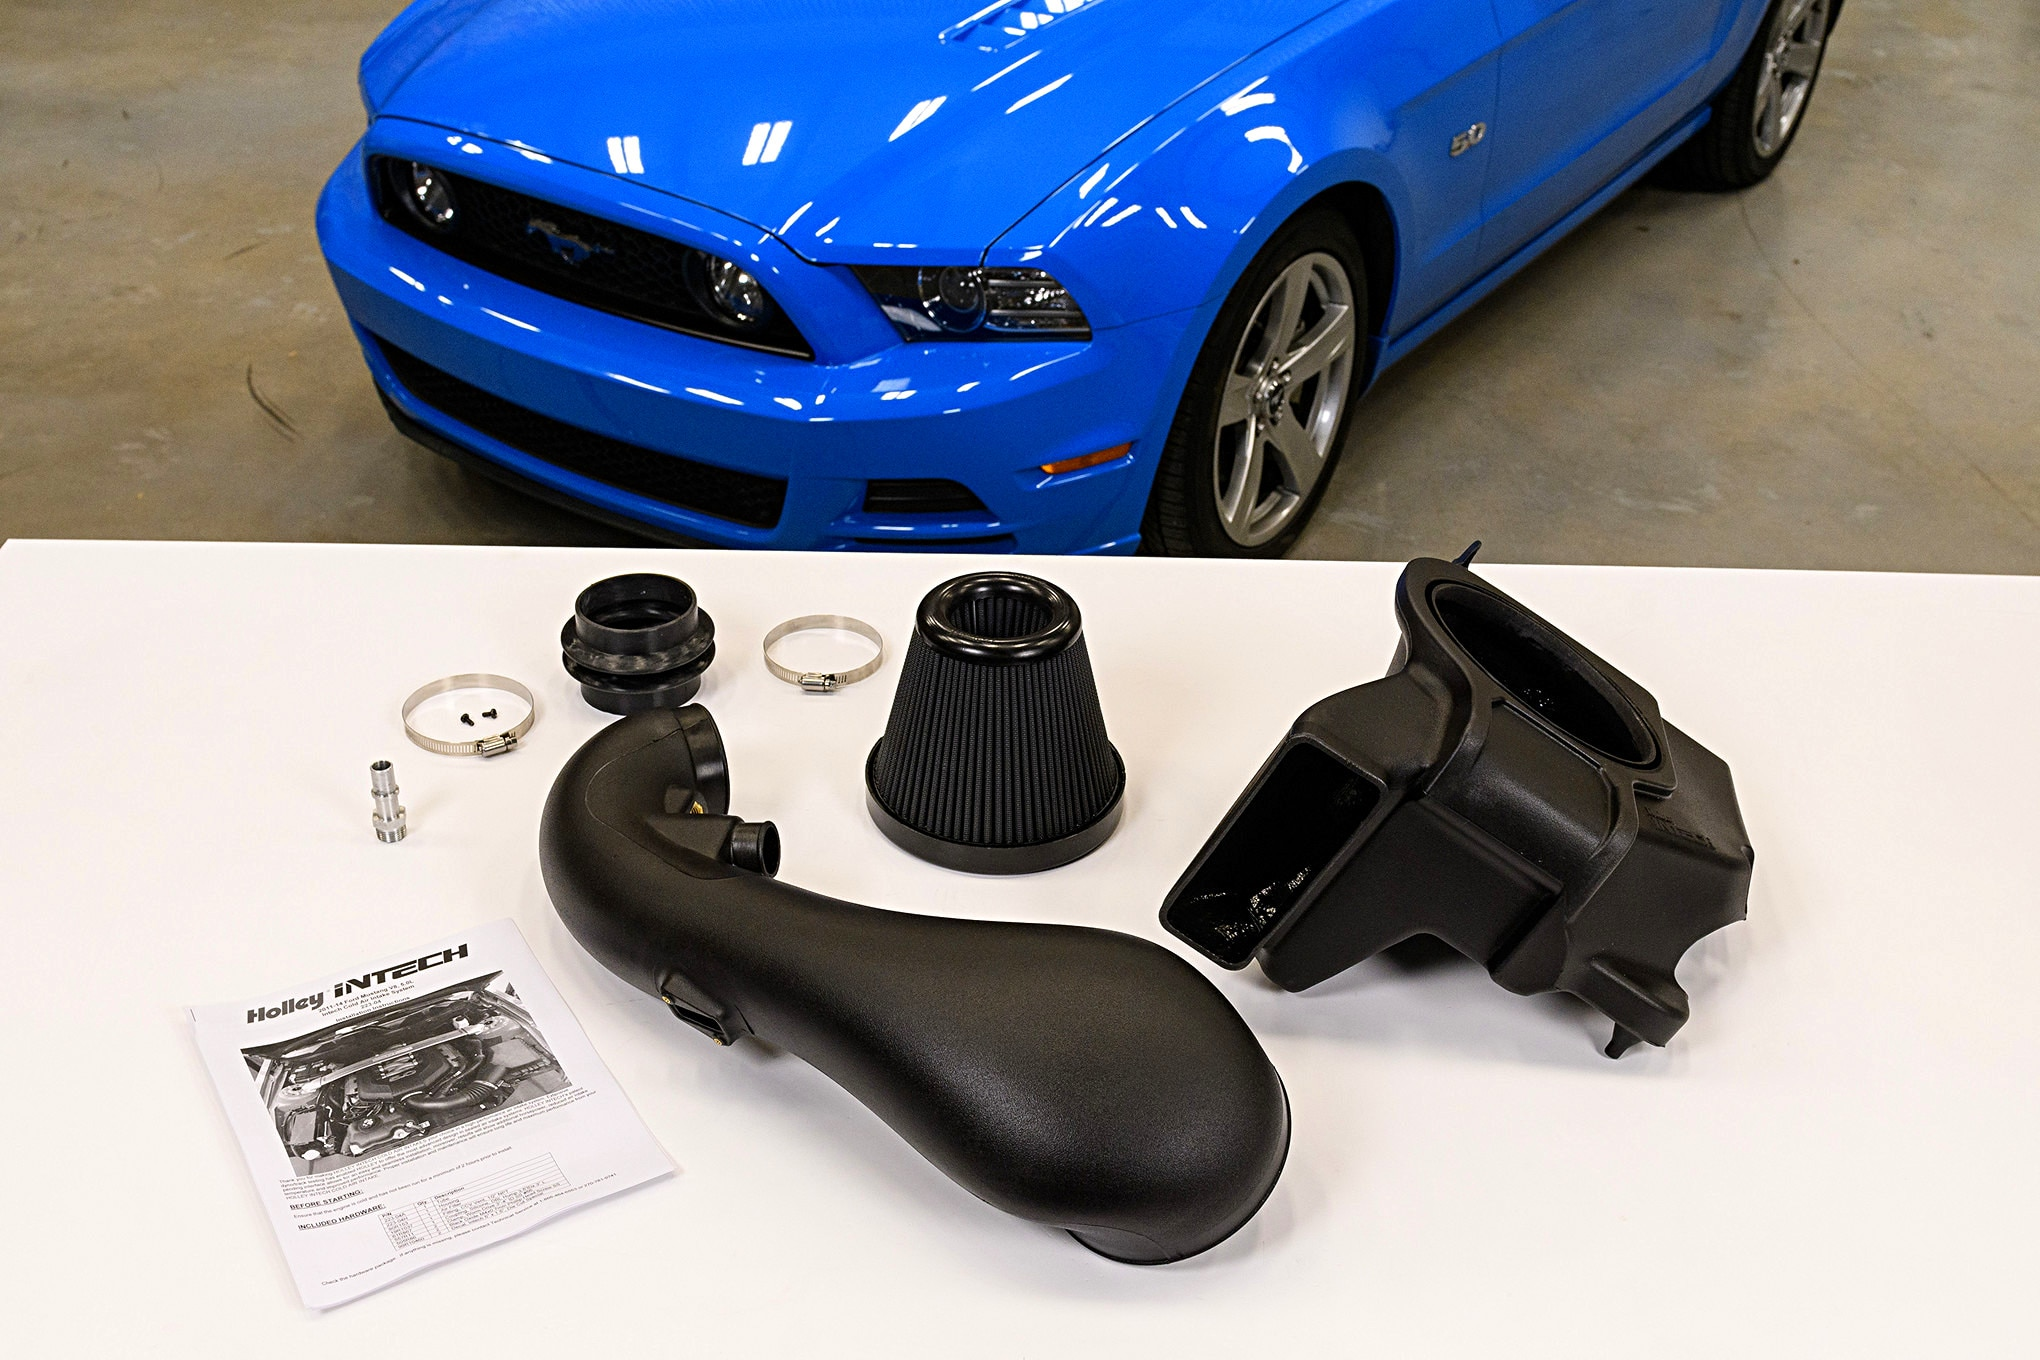 Holley INTECH Cold Air Intake Mustang Gt 002